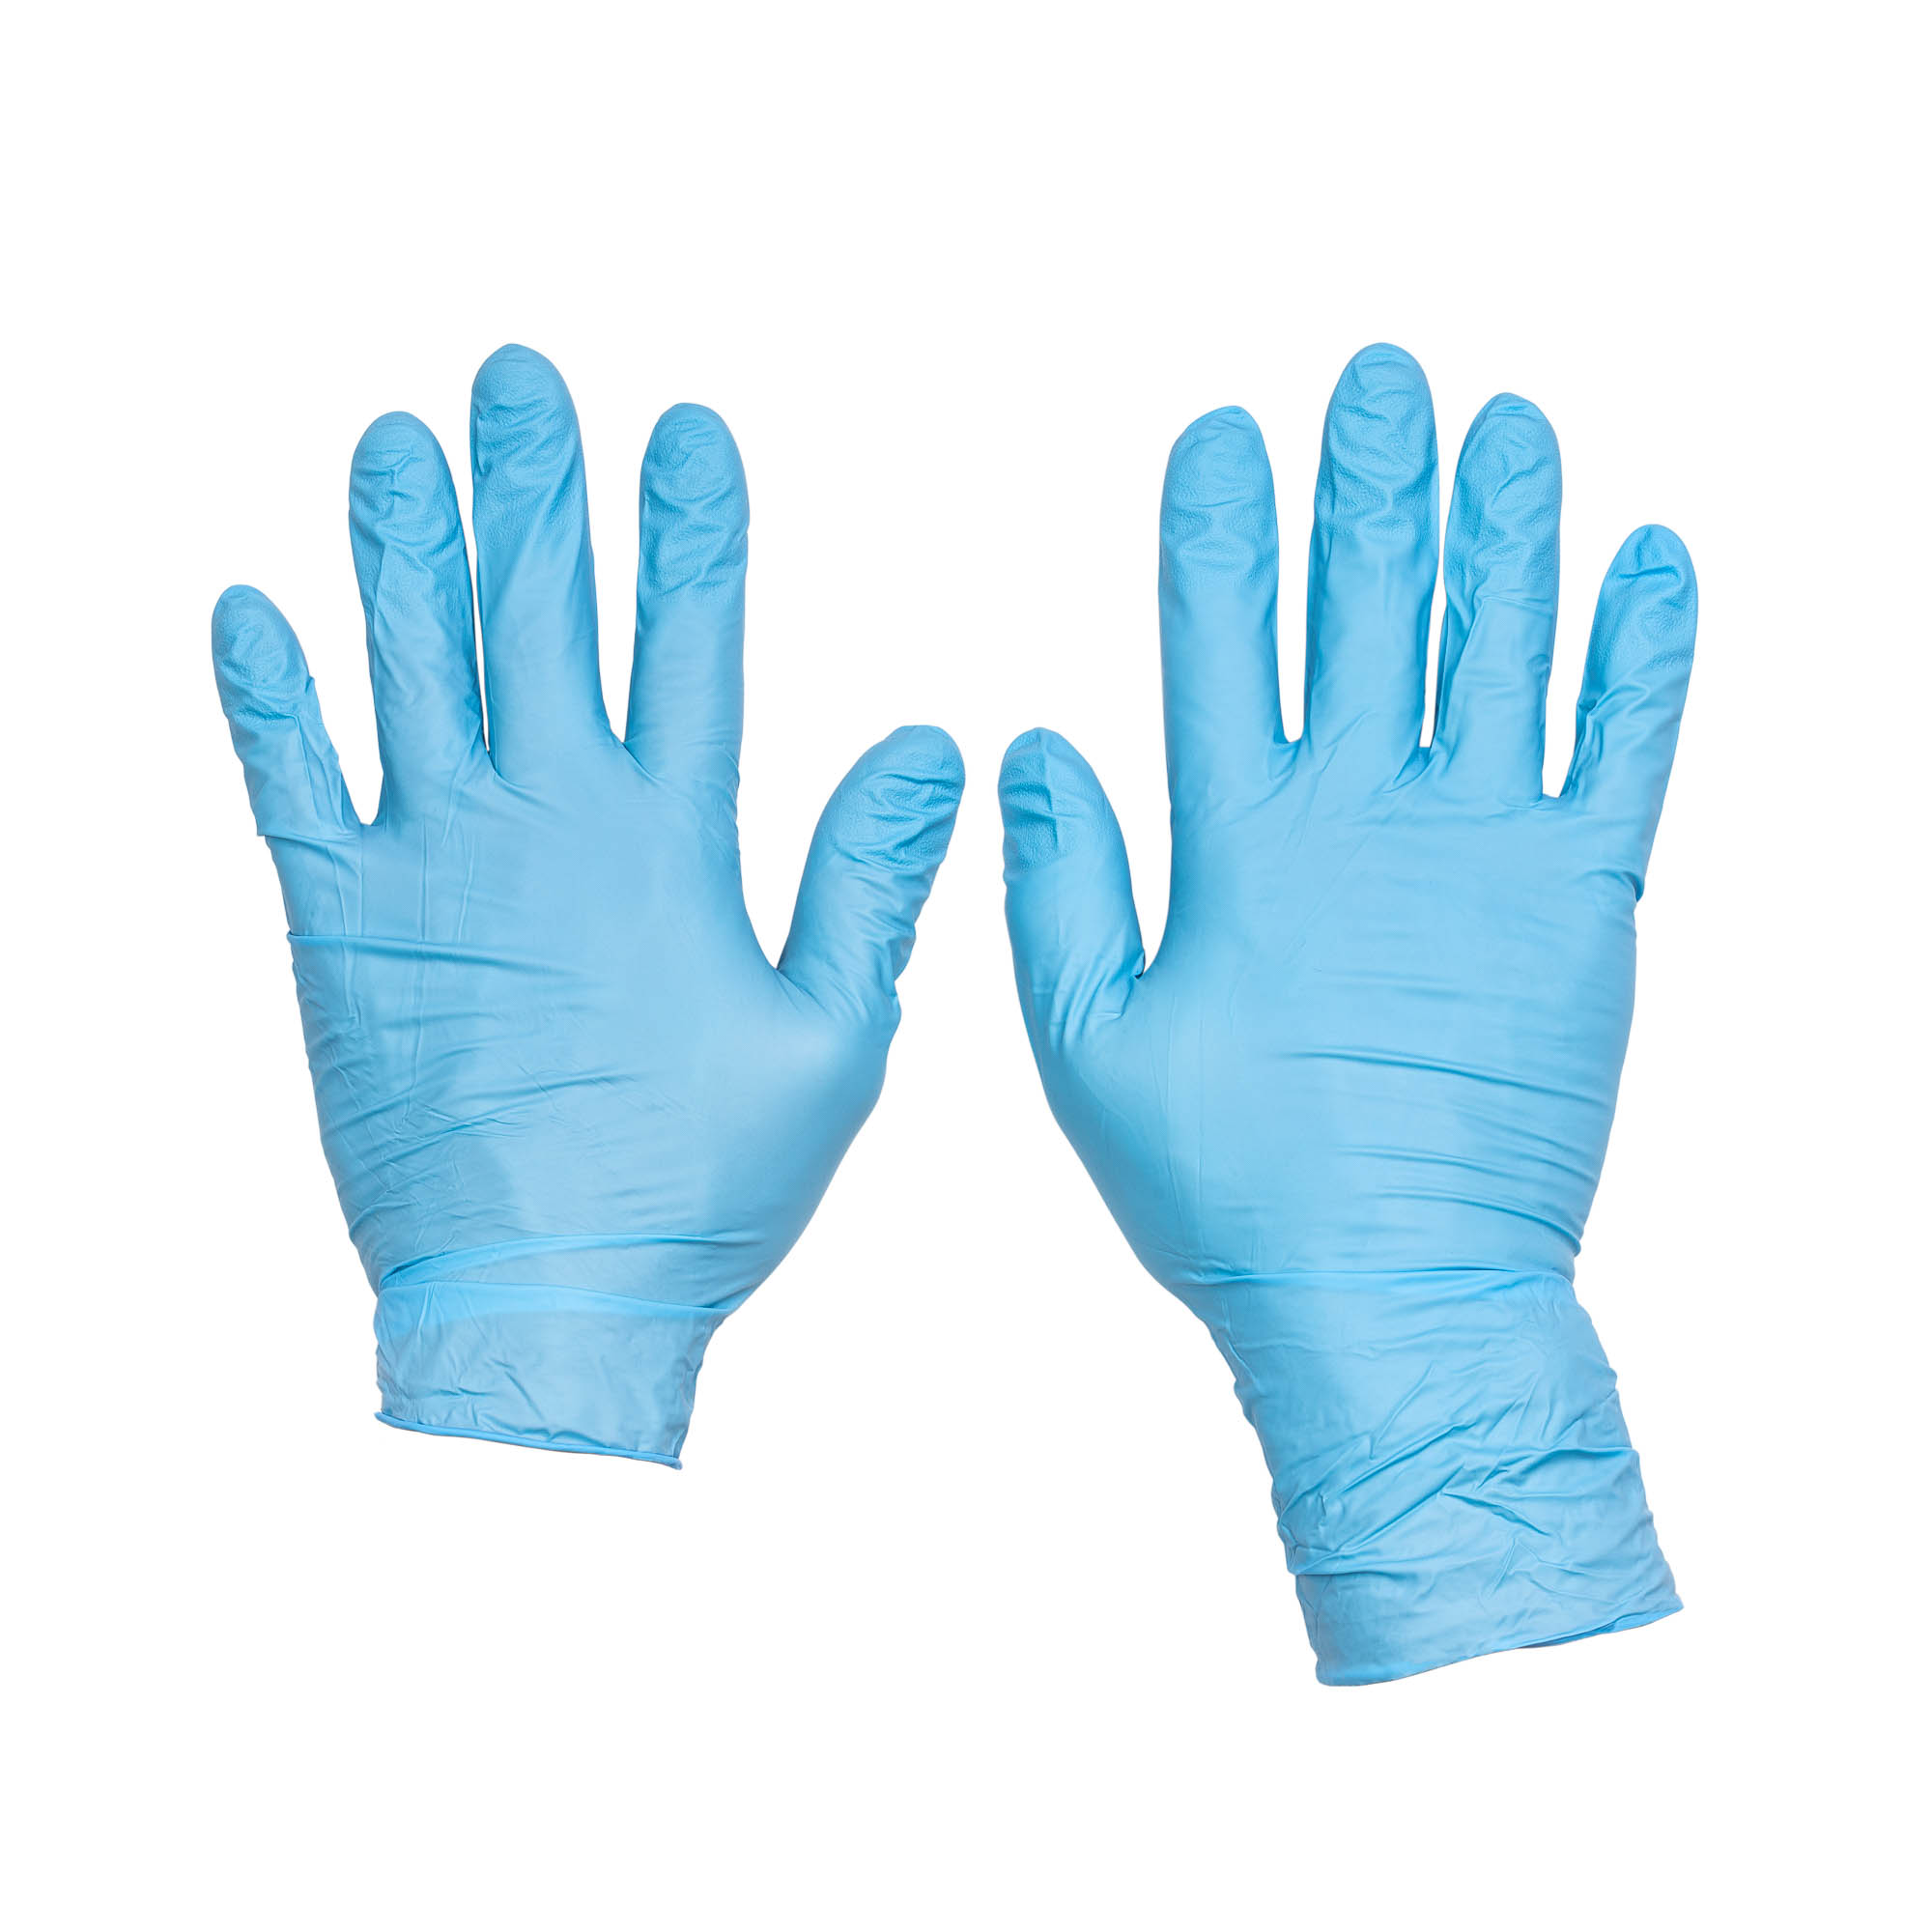 Pro Clean Blue Glove two sizes compare - Sample of product photography